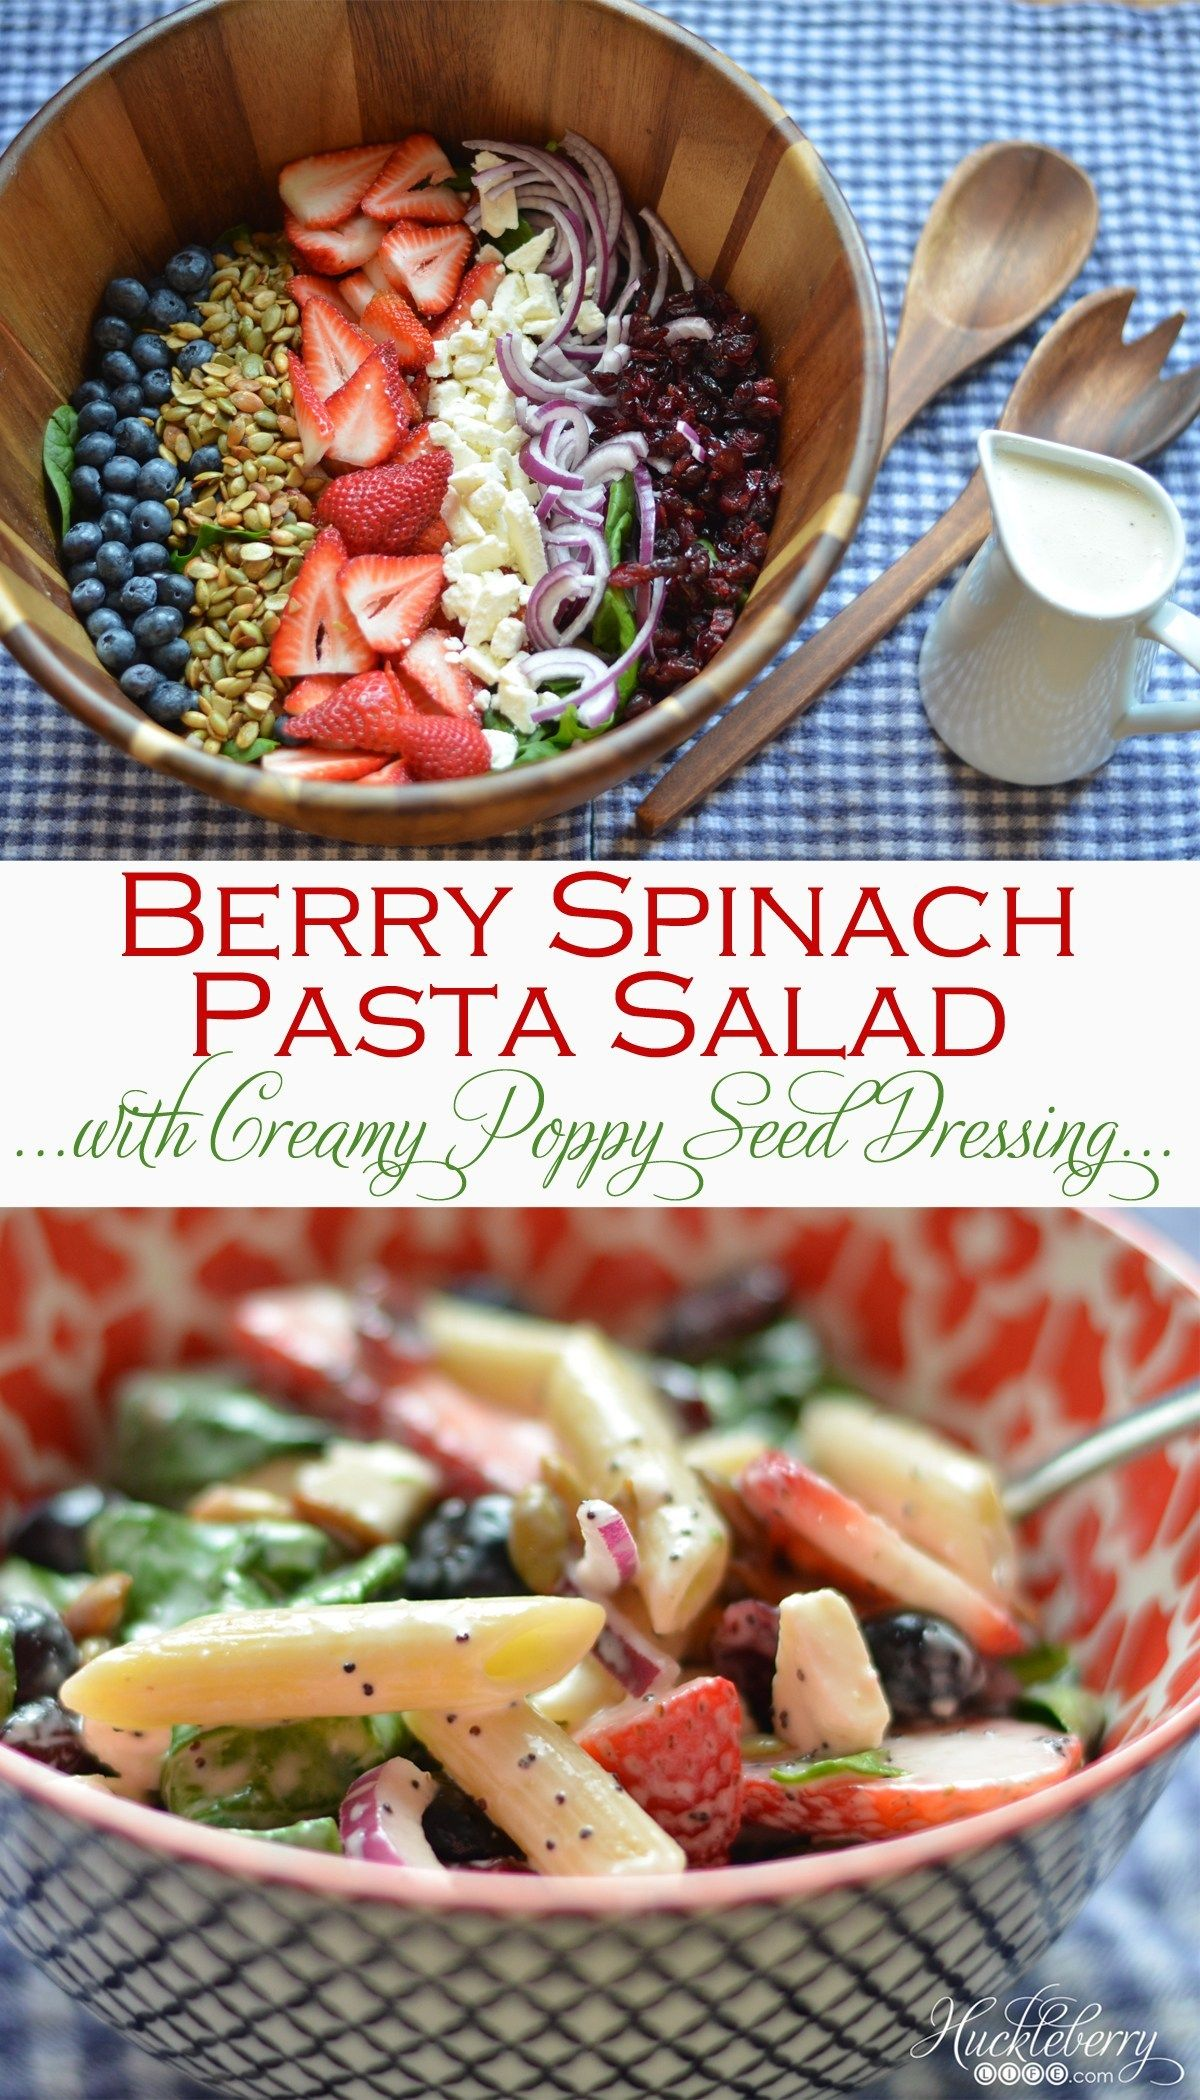 Berry spinach pasta salad with creamy poppy seed dressing